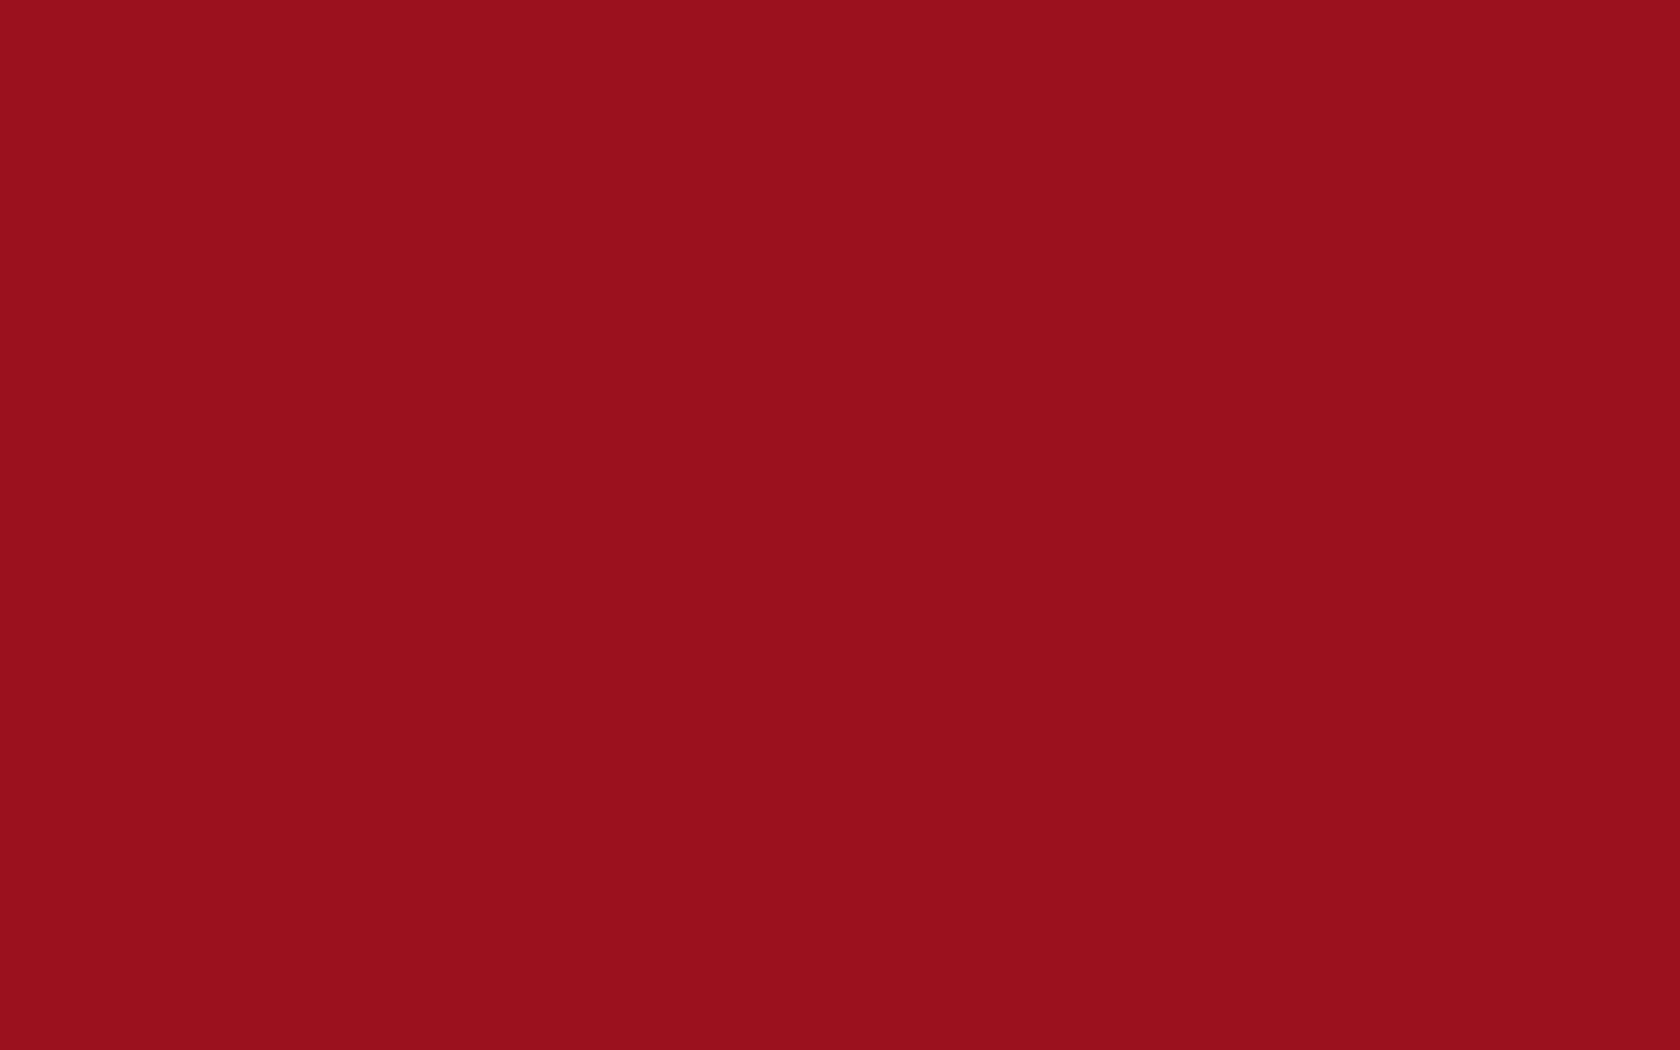 1680x1050 Ruby Red Solid Color Background